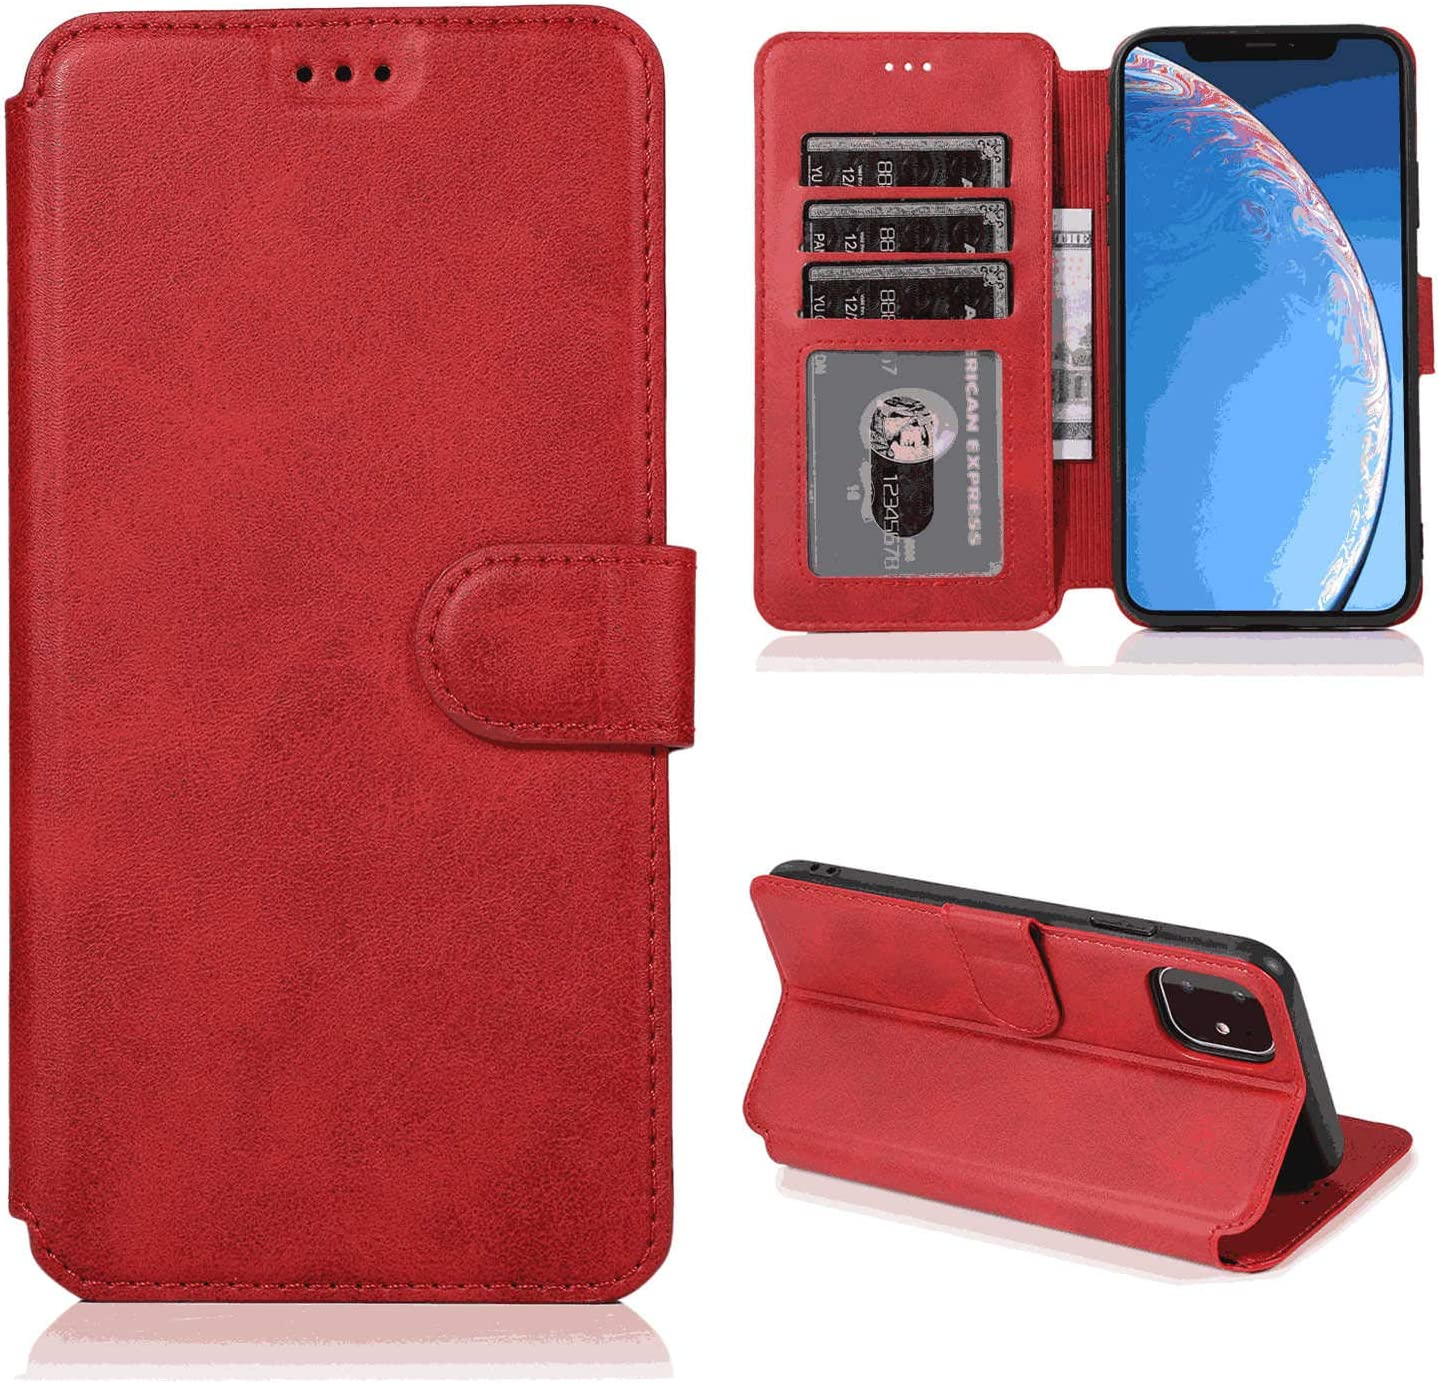 iPhone 7 Plus Flip Case Cover for Leather Card Holders Kickstand Extra-Shockproof Business Cell Phone case Flip Cover